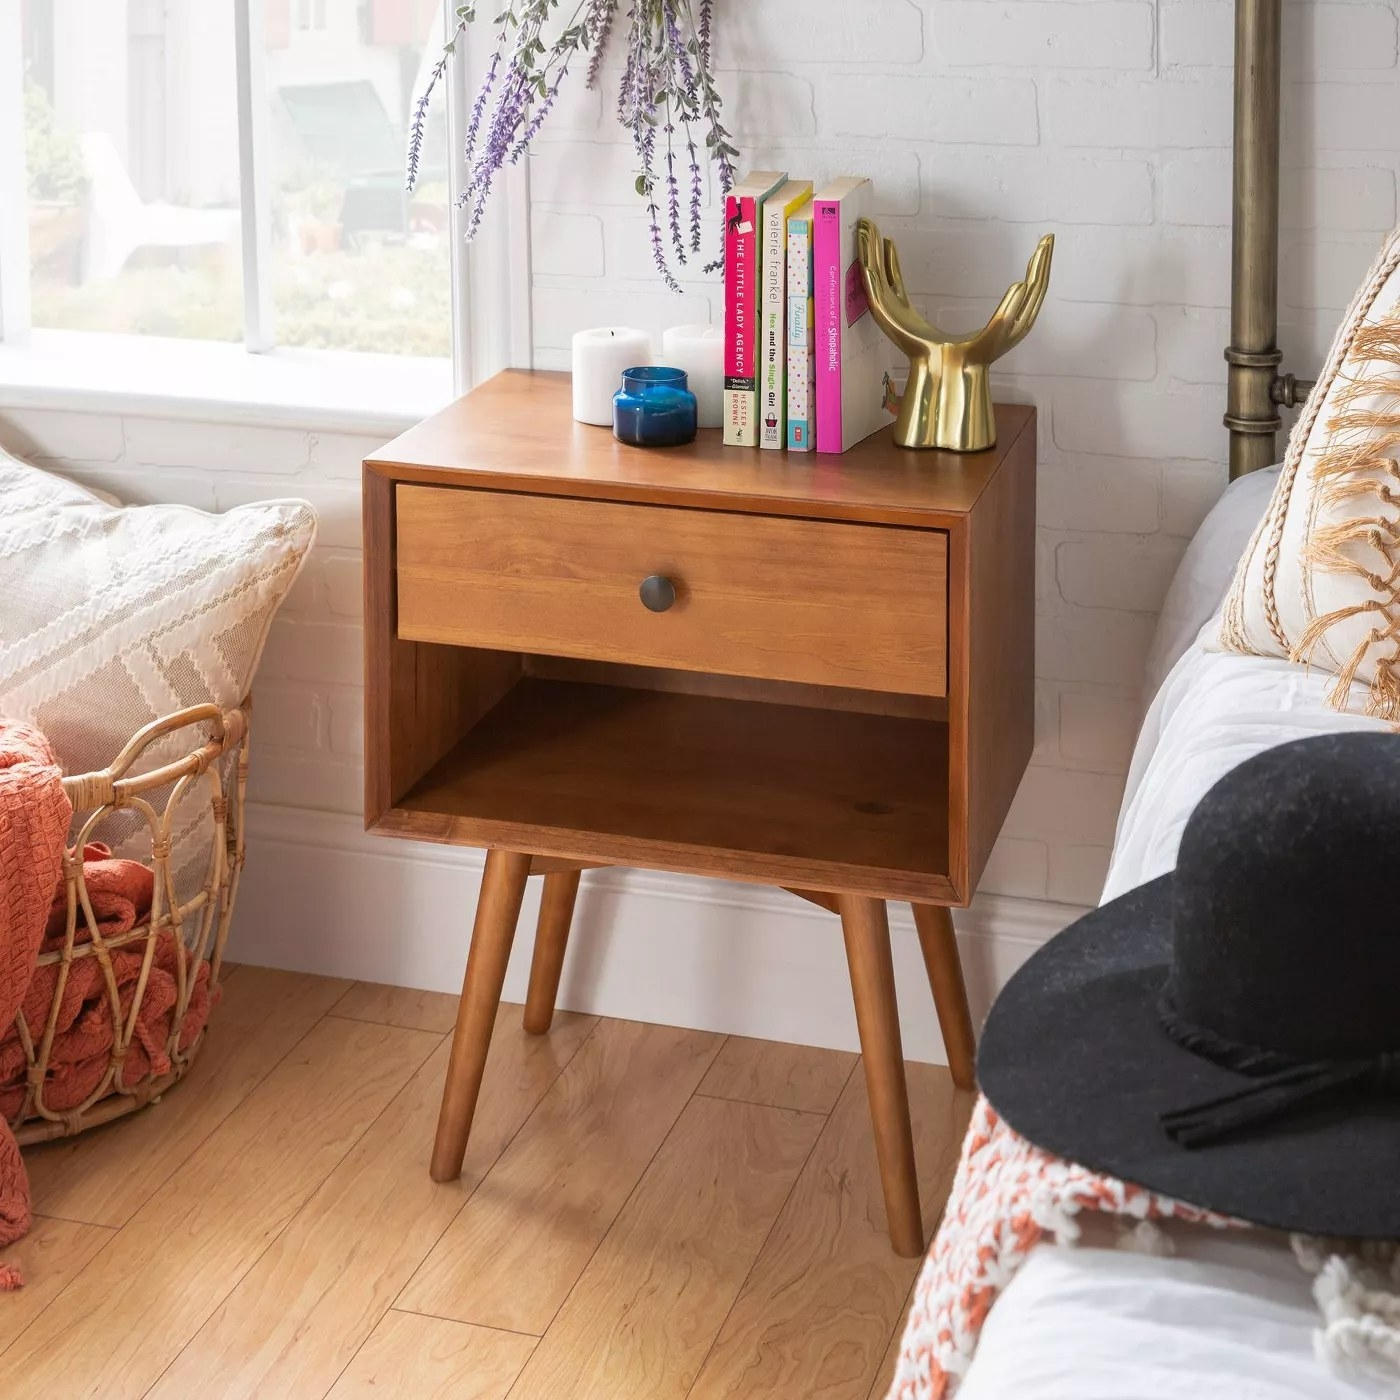 A caramel-colored nightstand with one drawer and one shelf